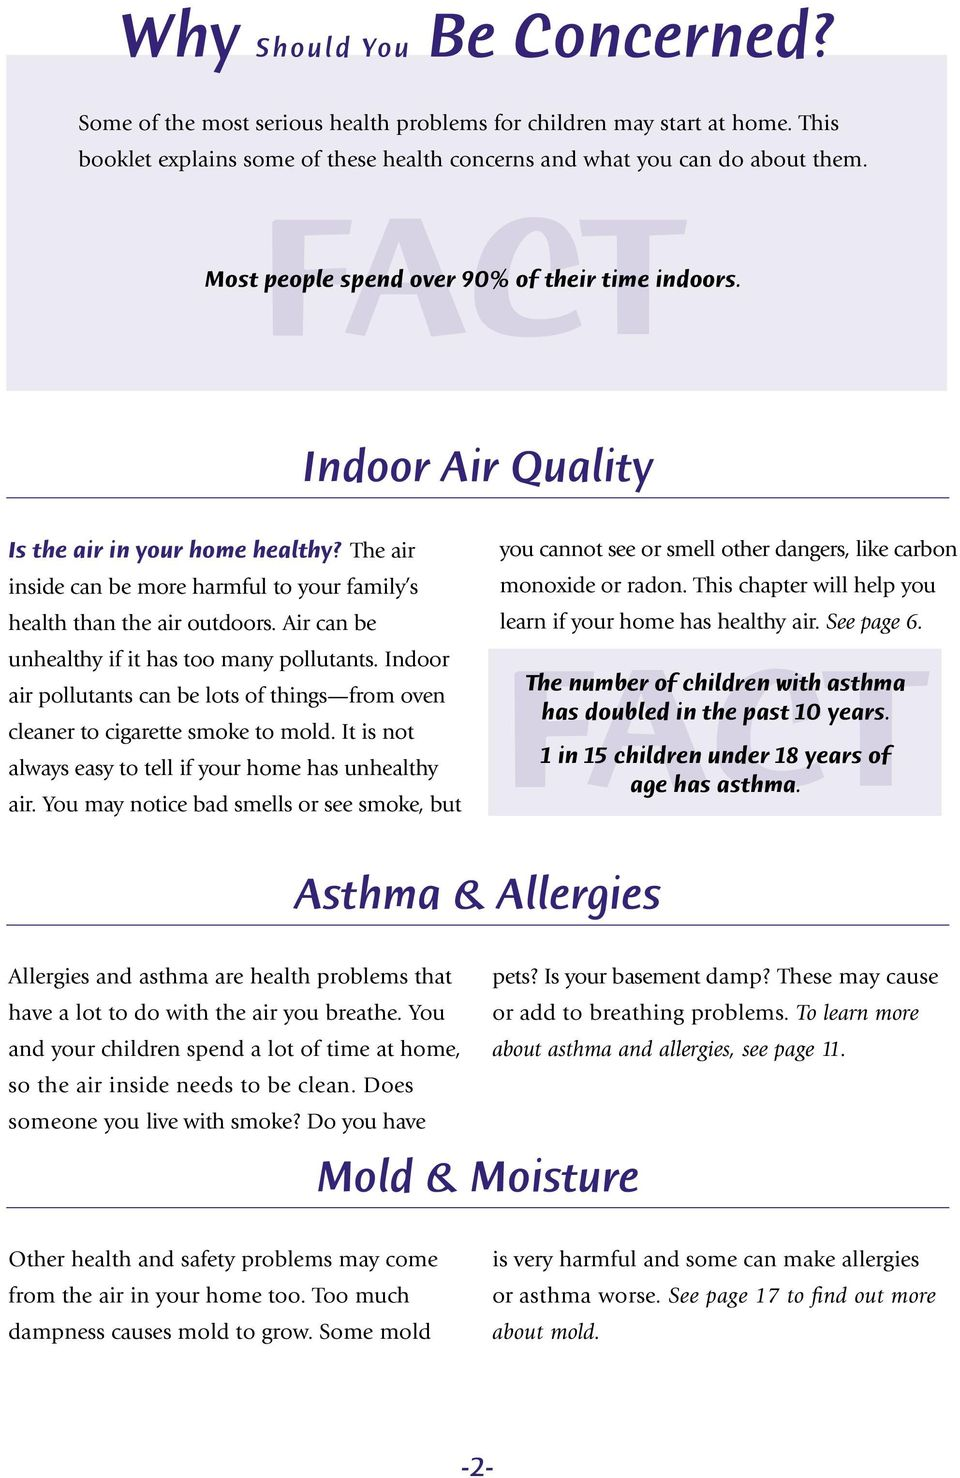 Air can be unhealthy if it has too many pollutants. Indoor air pollutants can be lots of things from oven cleaner to cigarette smoke to mold.